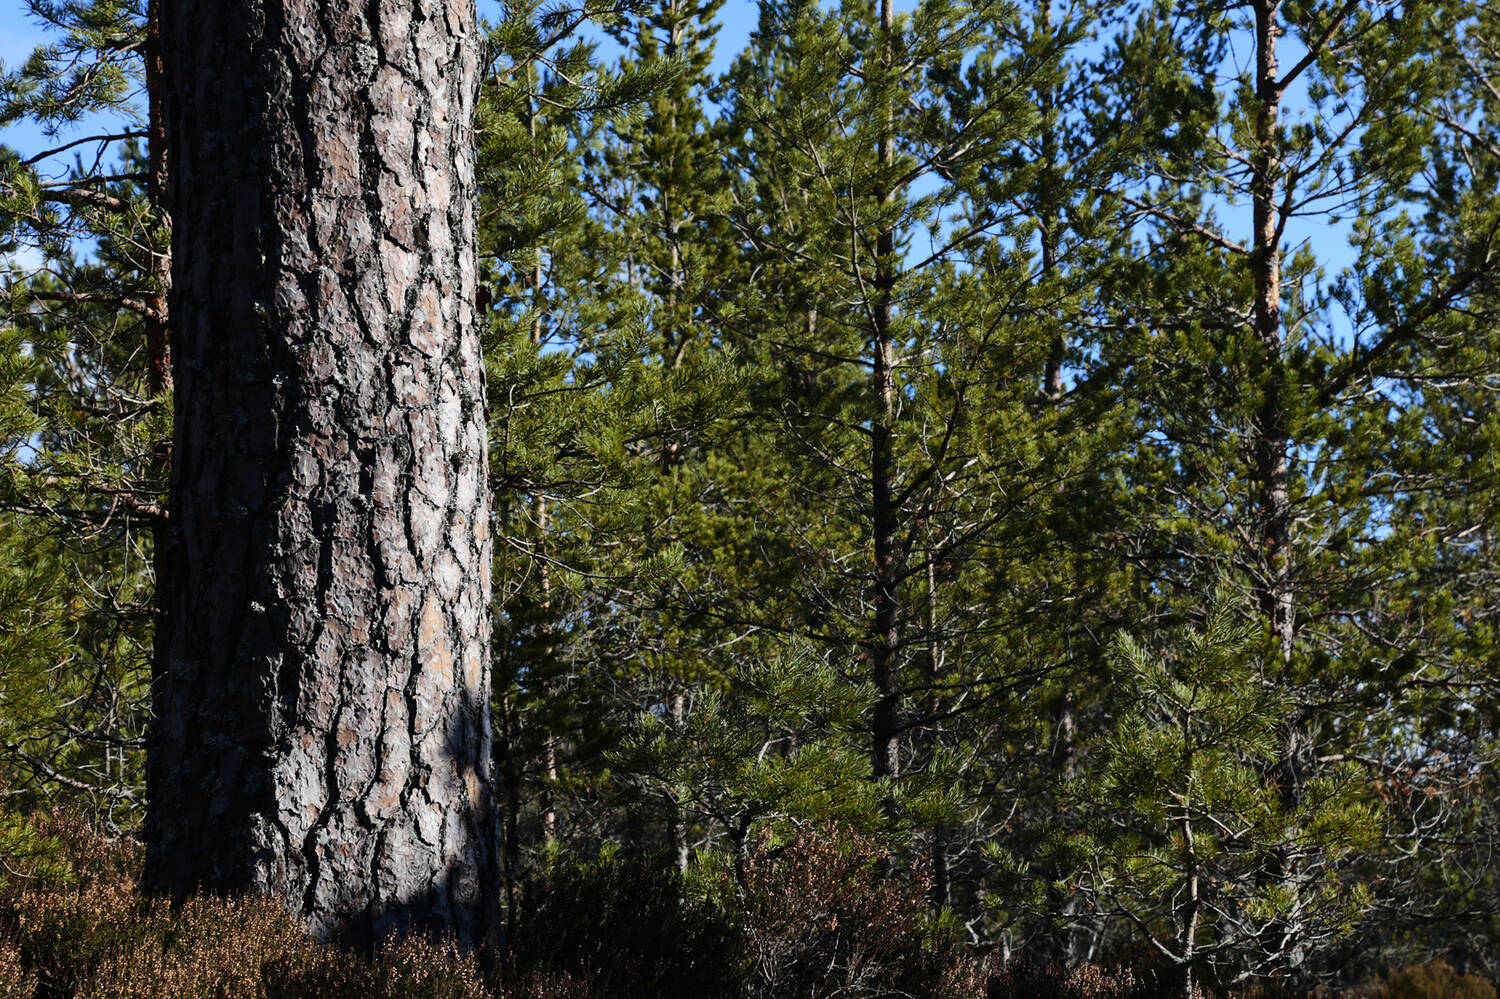 A pine woodland with blue sky above. A close-up of a large tree trunk at the left hand side.